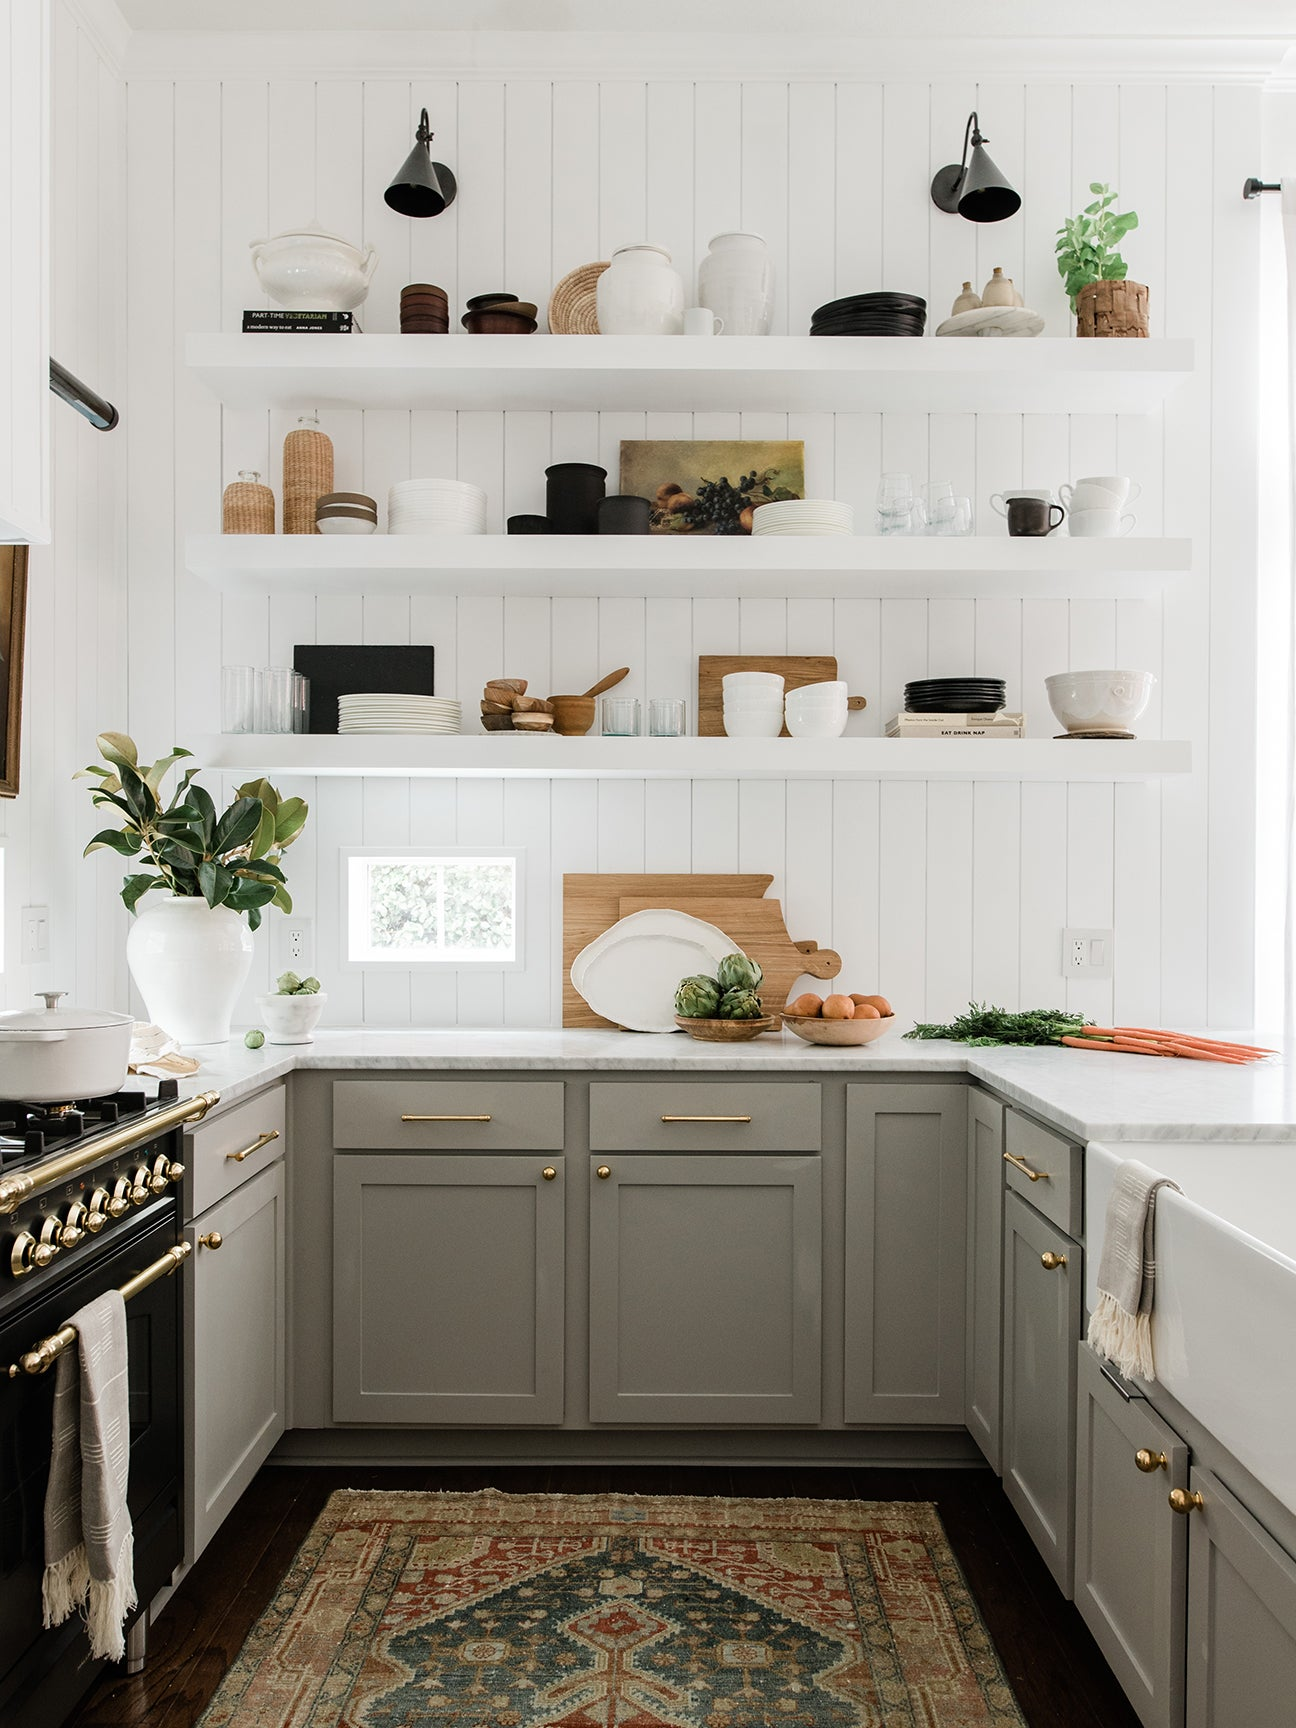 white kitchen with open shelving and gray cabinets